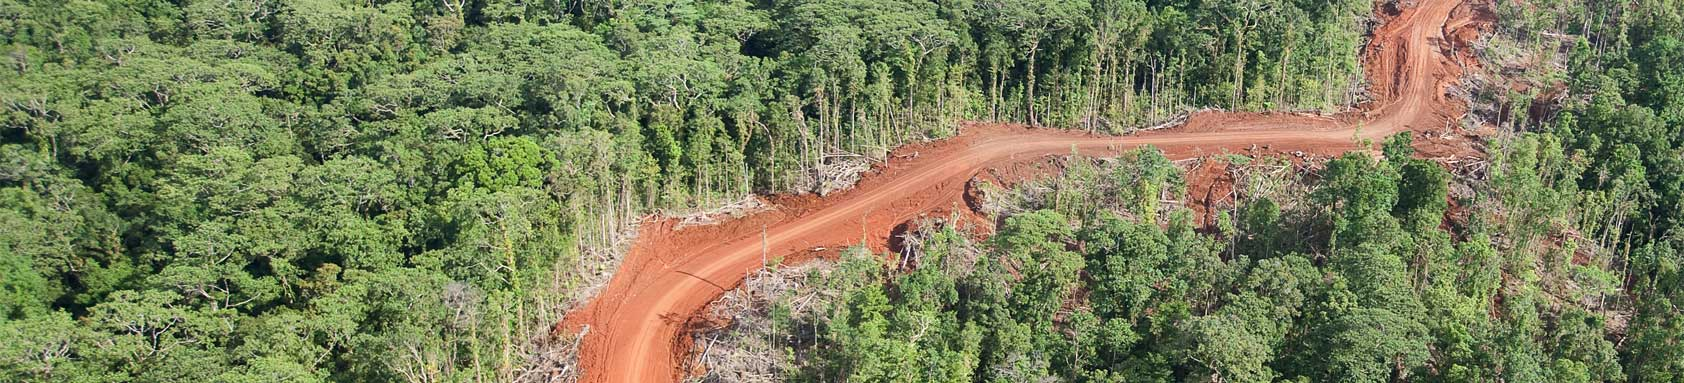 Logging Road in the Forests of Vangunu Island.jpg